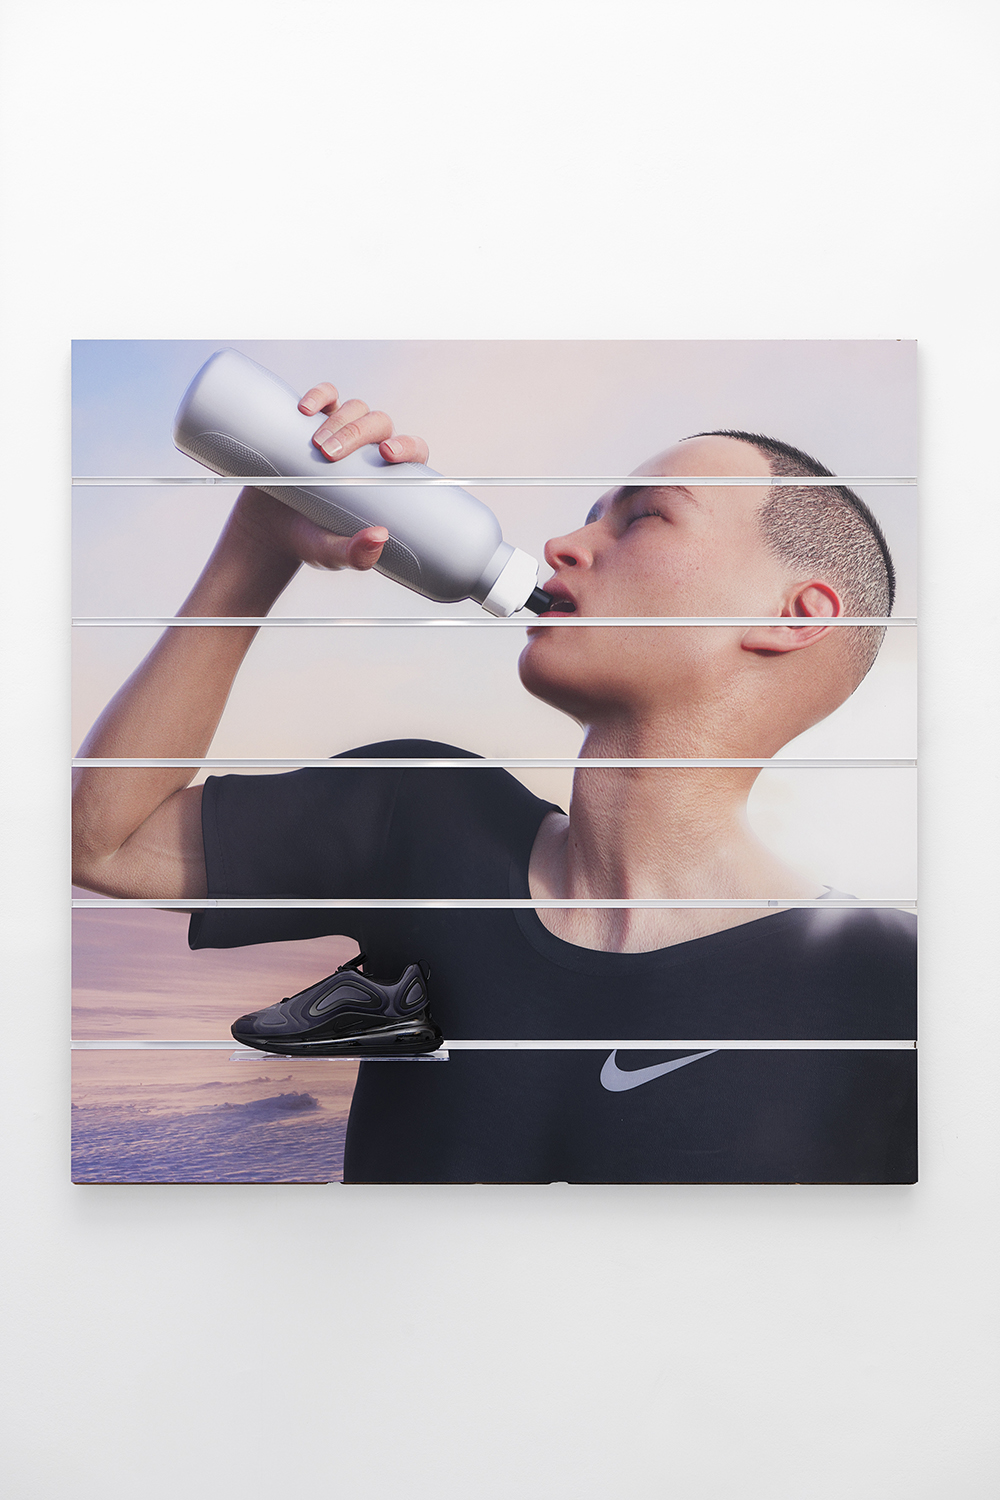 Board (Nike), Ben Elliot, 2019, Unique, Digital print on slatwall panel,  